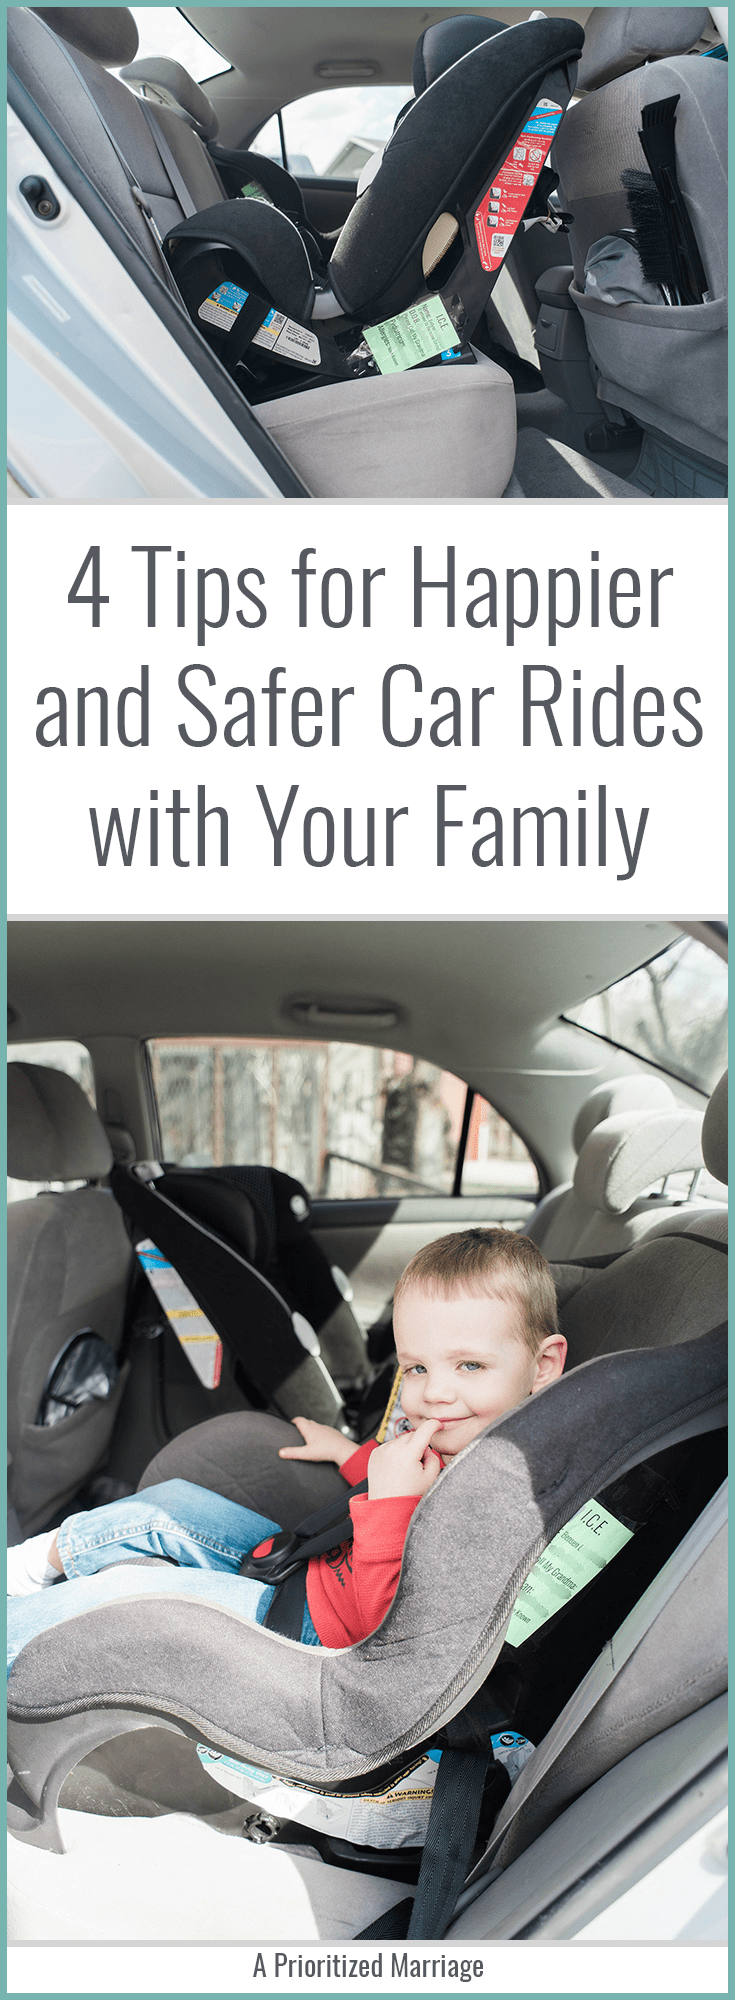 With a little preparation, you will have peace of mind on any car ride with your family.